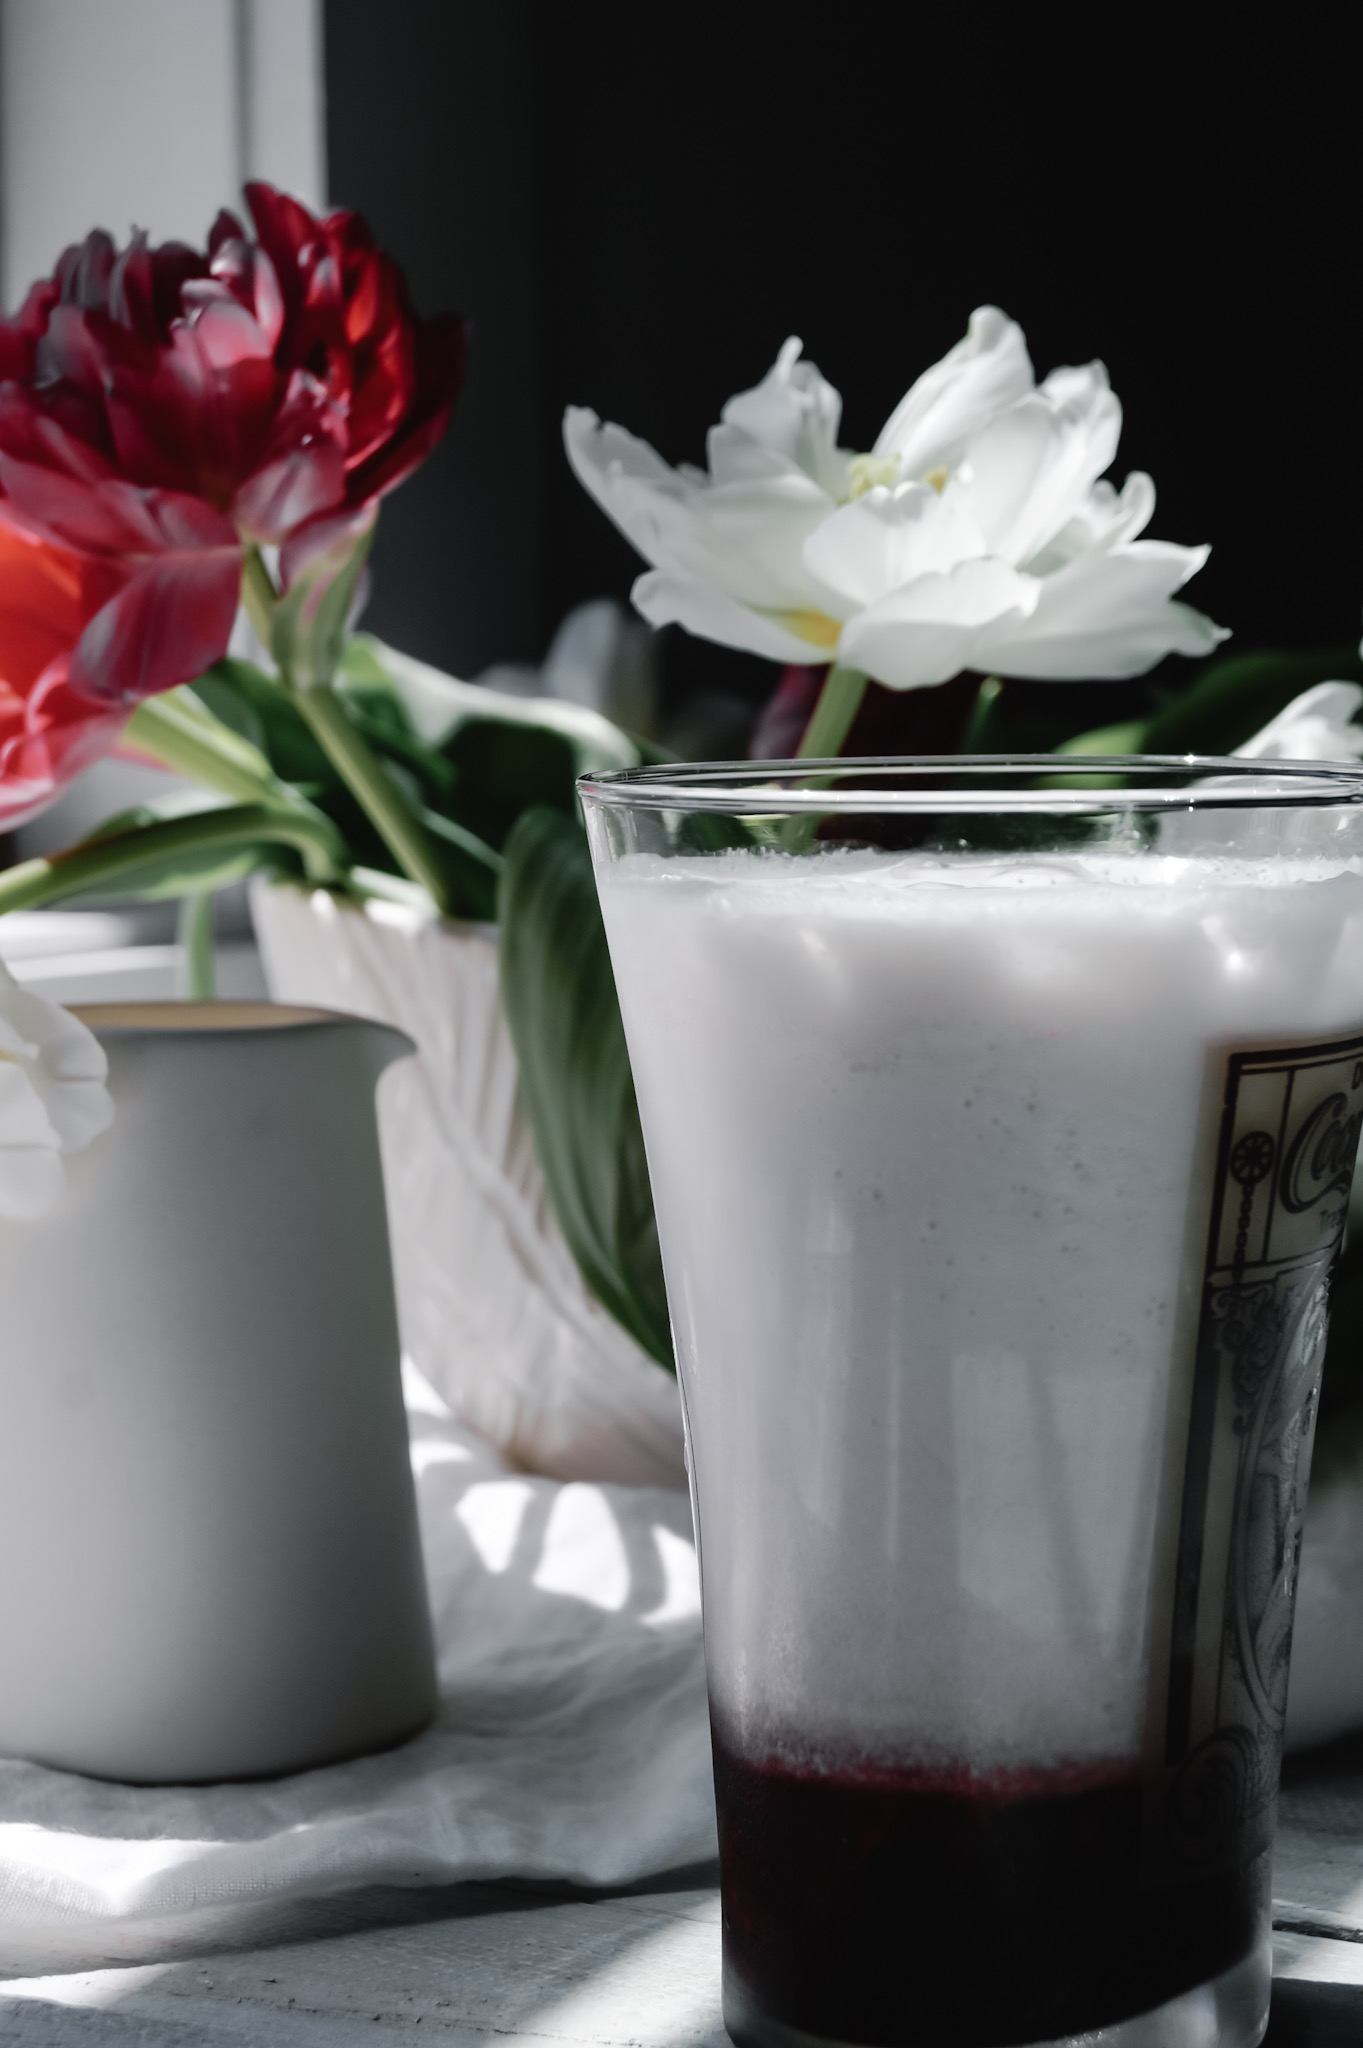 Cream + bubbles = foamy french soda heaven.